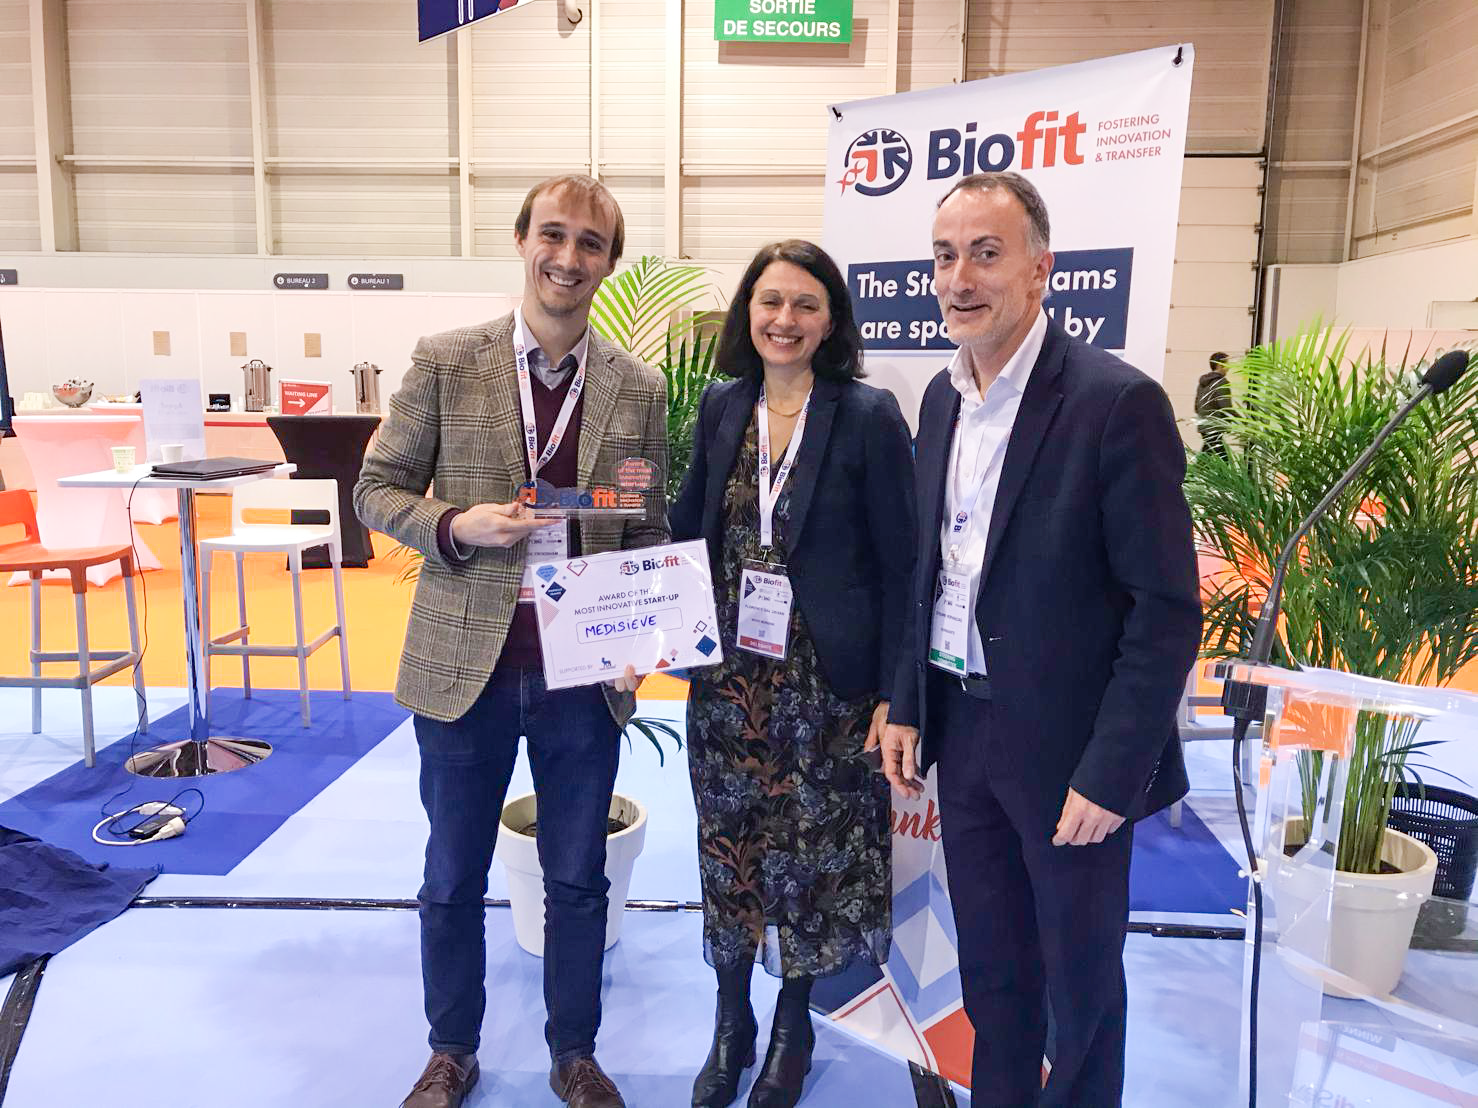 MediSieve wins Most Innovative Startup Award at BioFit Event 2019.